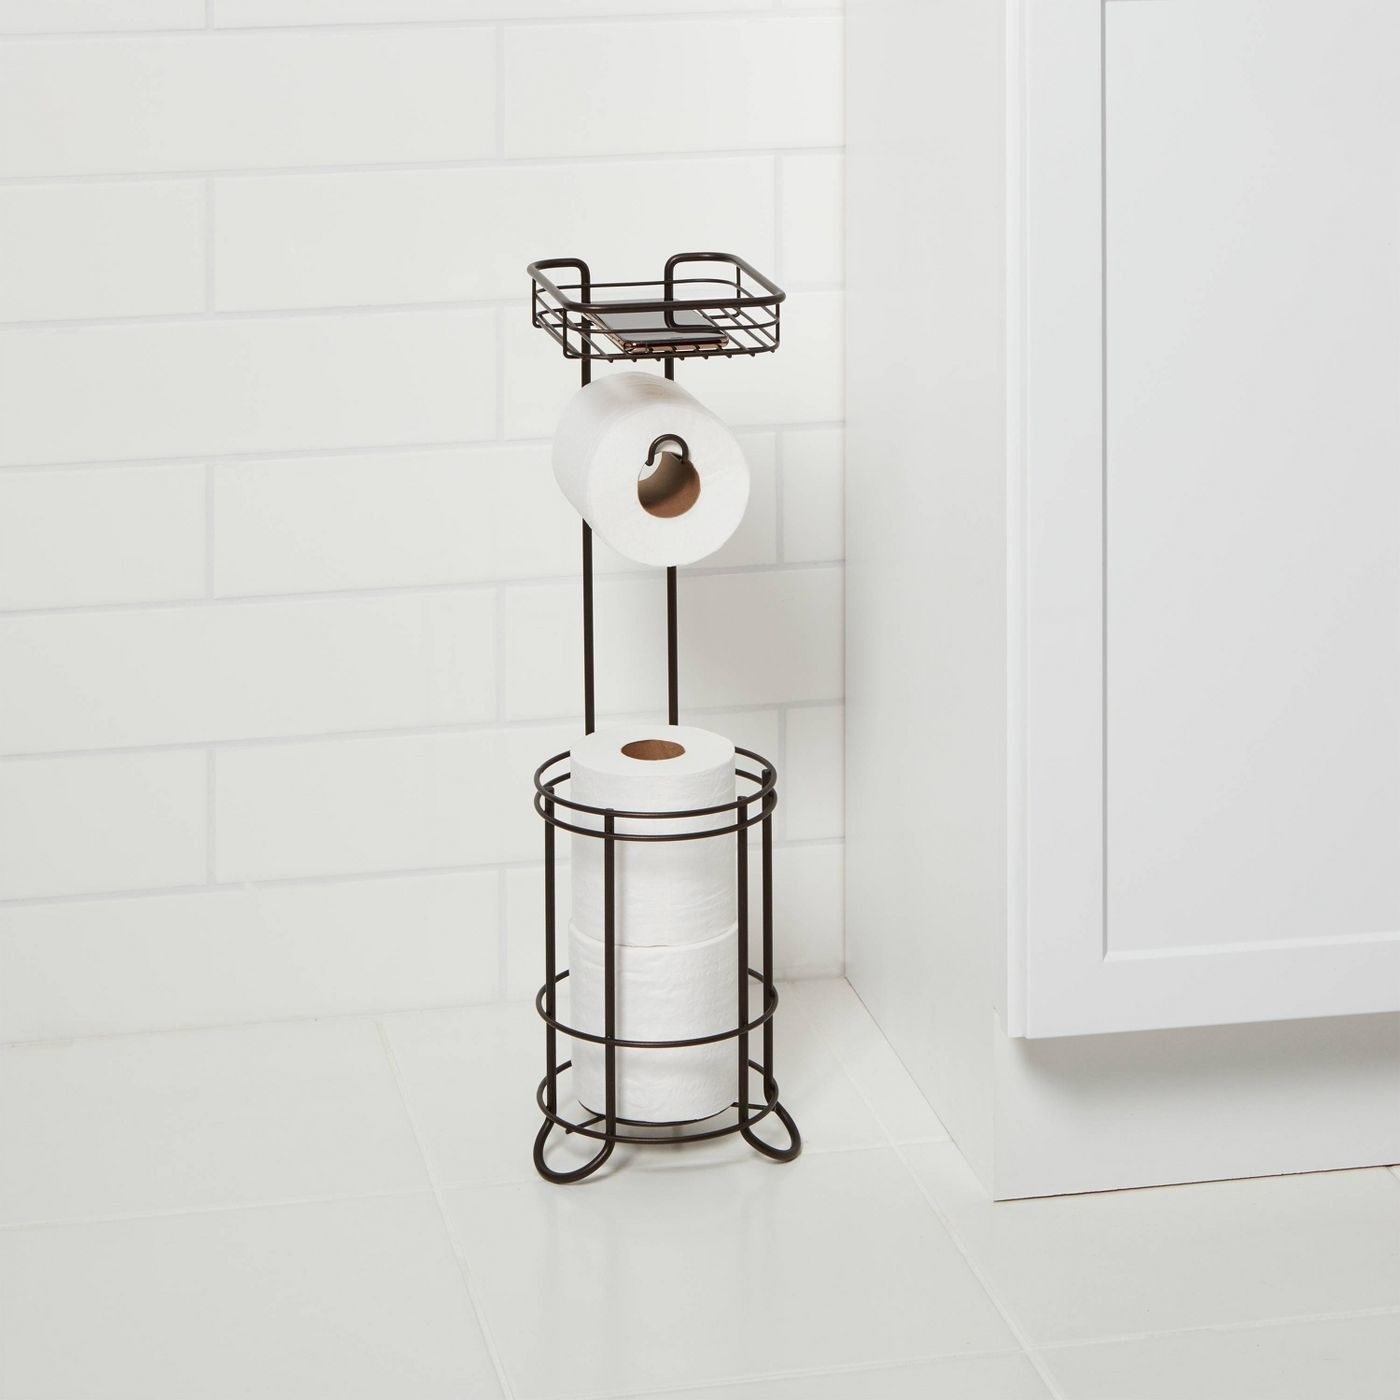 A black wire toilet paper caddy, with circular storage for two rolls at bottom, space to hang one roll in the middle, and a phone shelf at the top